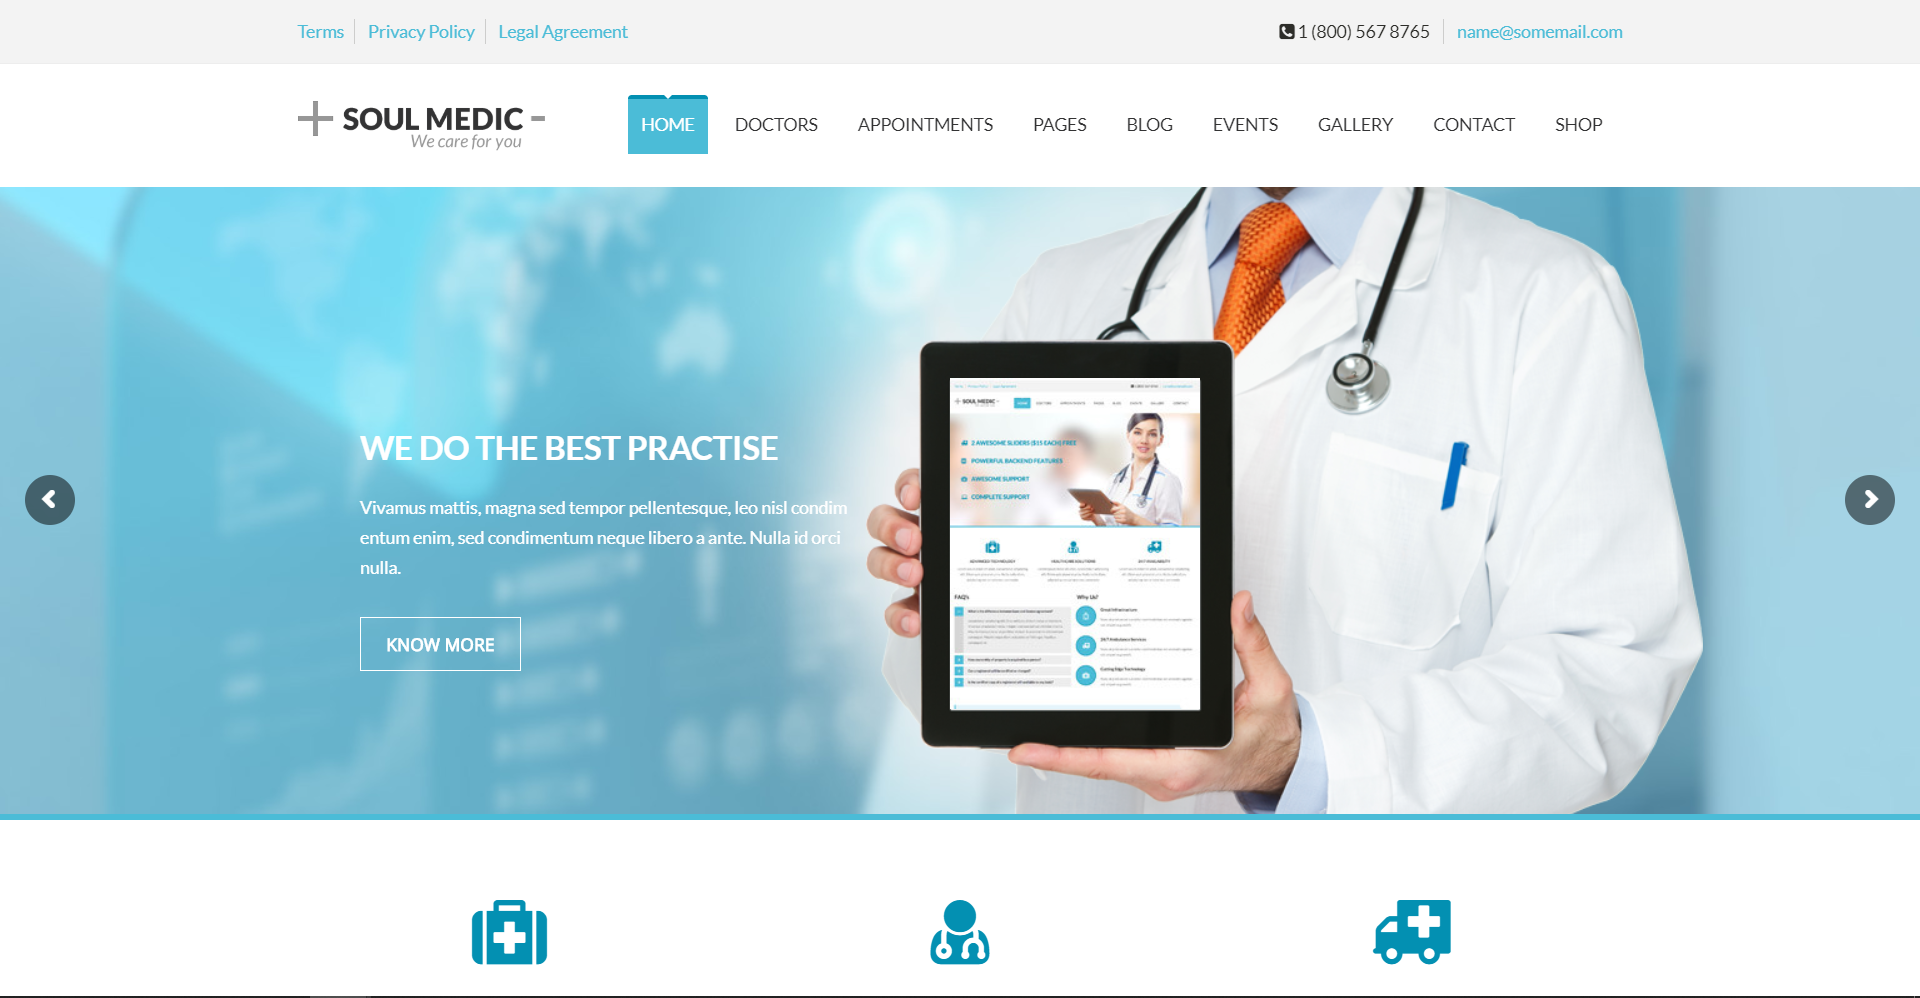 12. SoulMedic Health Medical & Health Care Theme